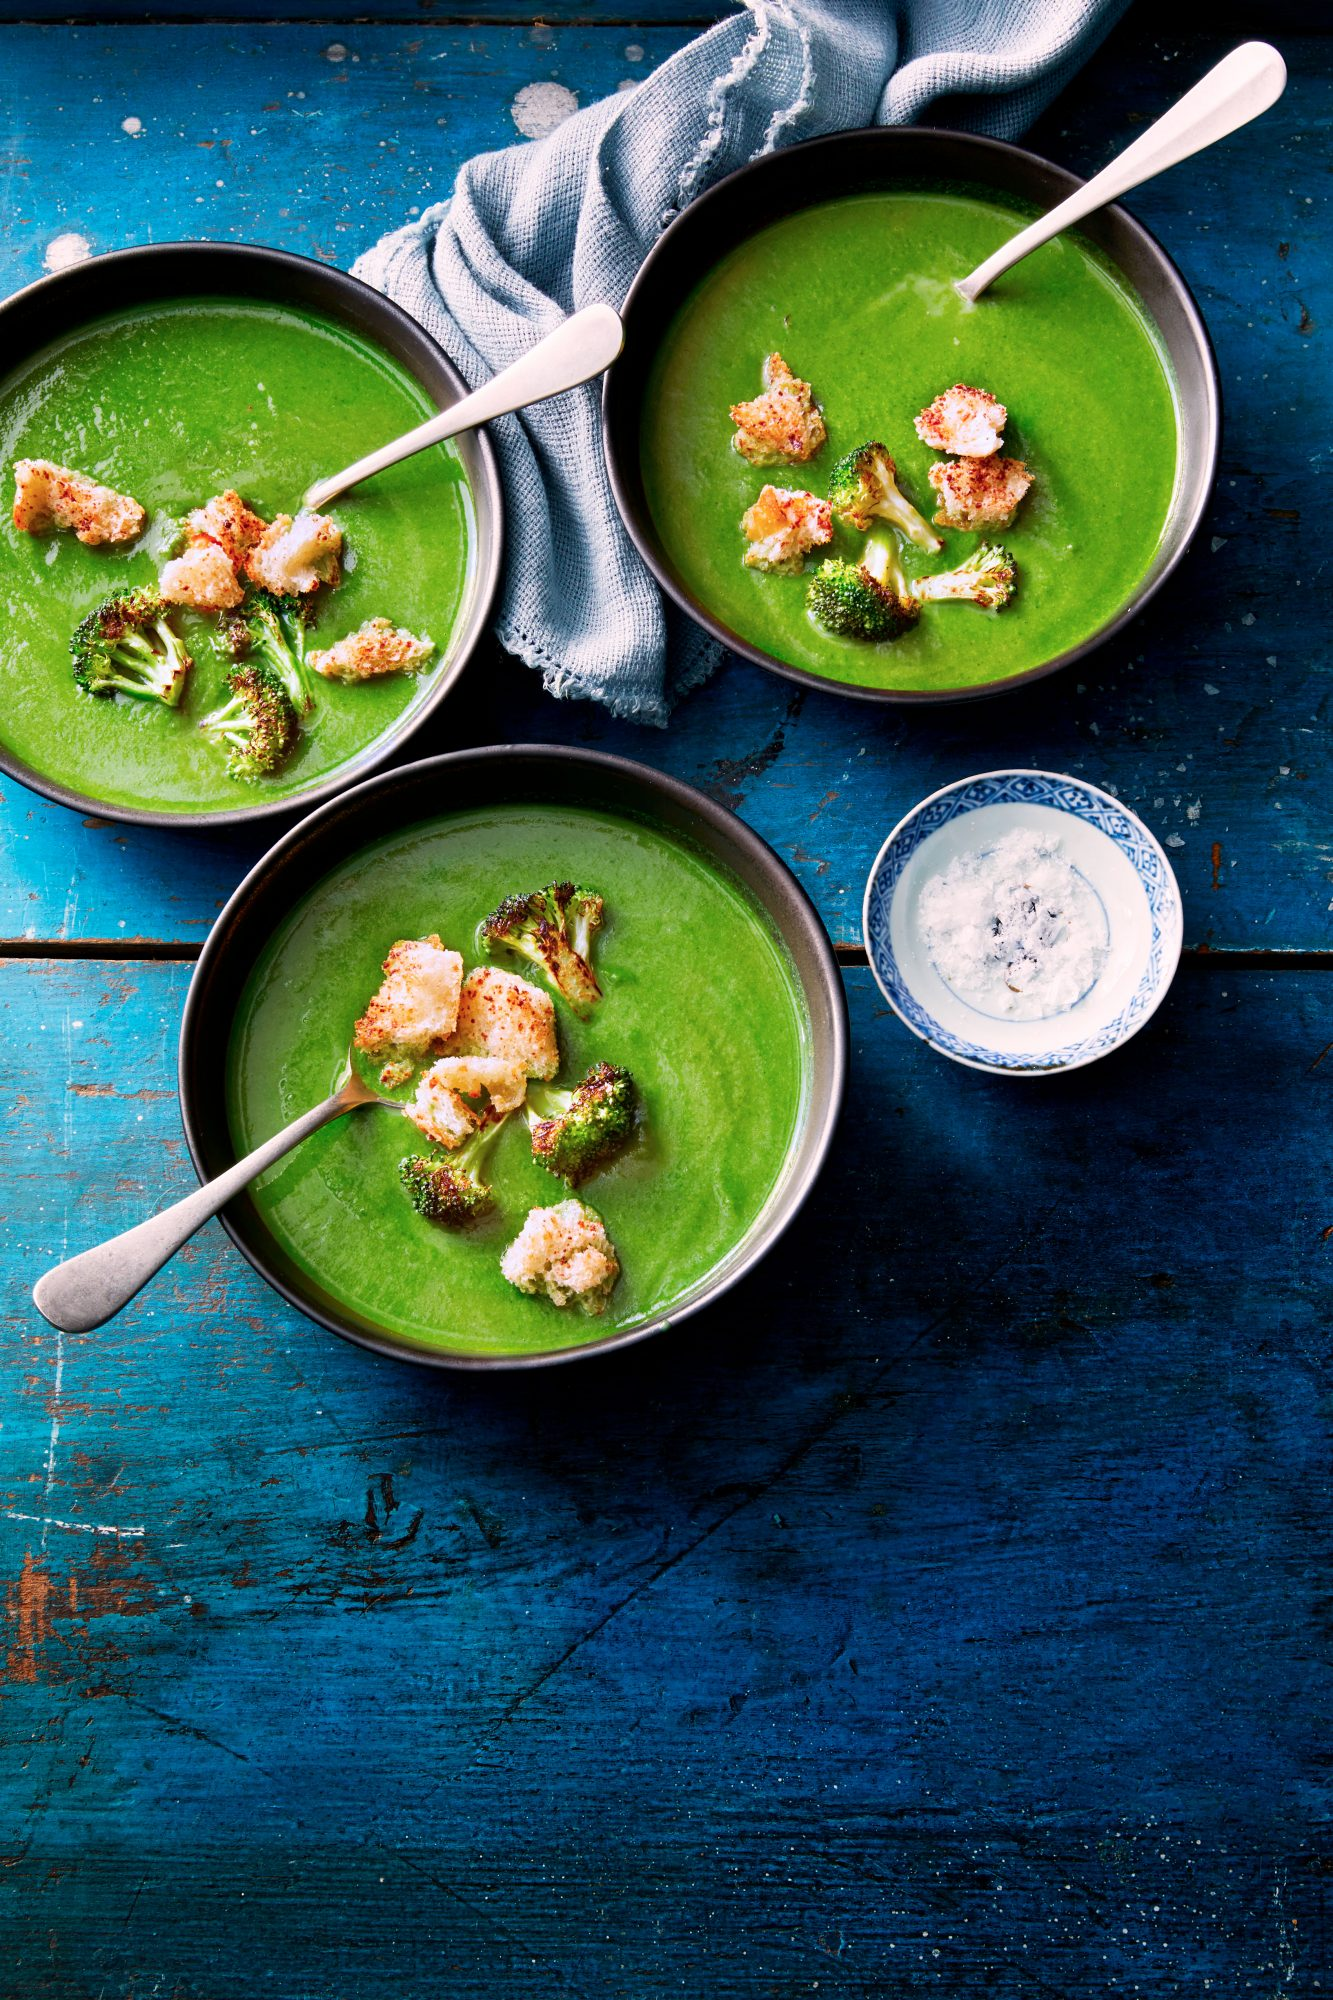 Broccoli-Spinach Soup with Parmesan Croutons